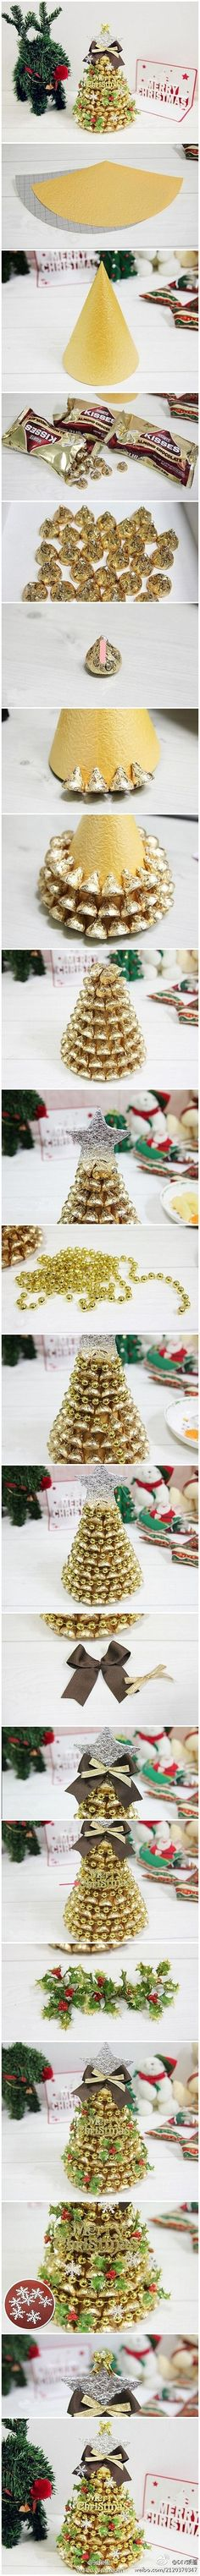 How to make cute Chocolate Christmas tree decorations step by step DIY tutorial instructions, How to, how to do, diy instructions, crafts, d by Mary Smith fSesz